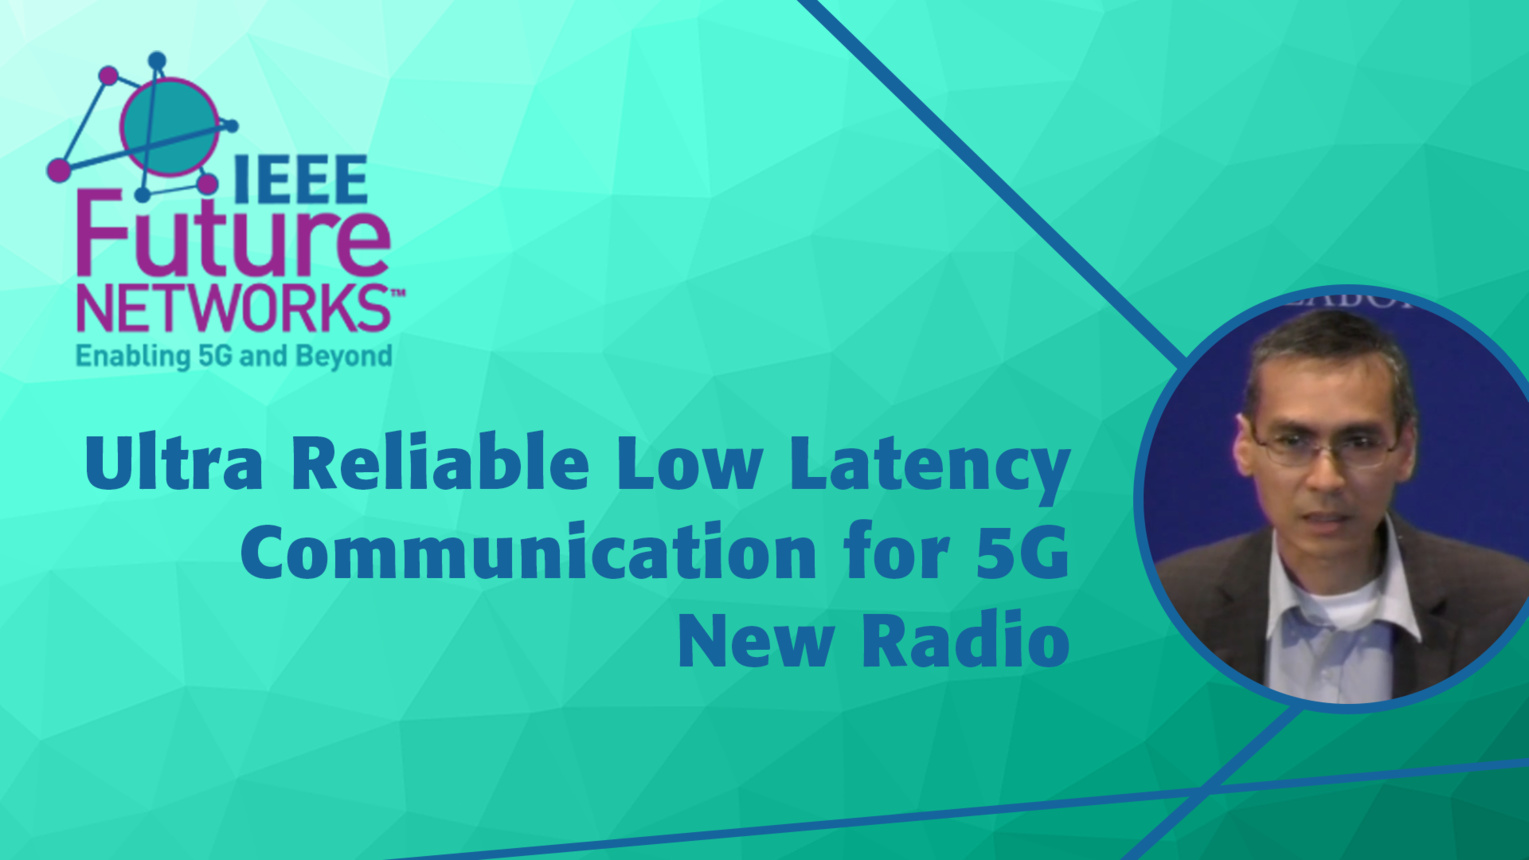 Ultra Reliable Low Latency Communication for 5G New Radio - Rapeepat Ratasuk - 5G Technologies for Tactical and First Responder Networks 2018